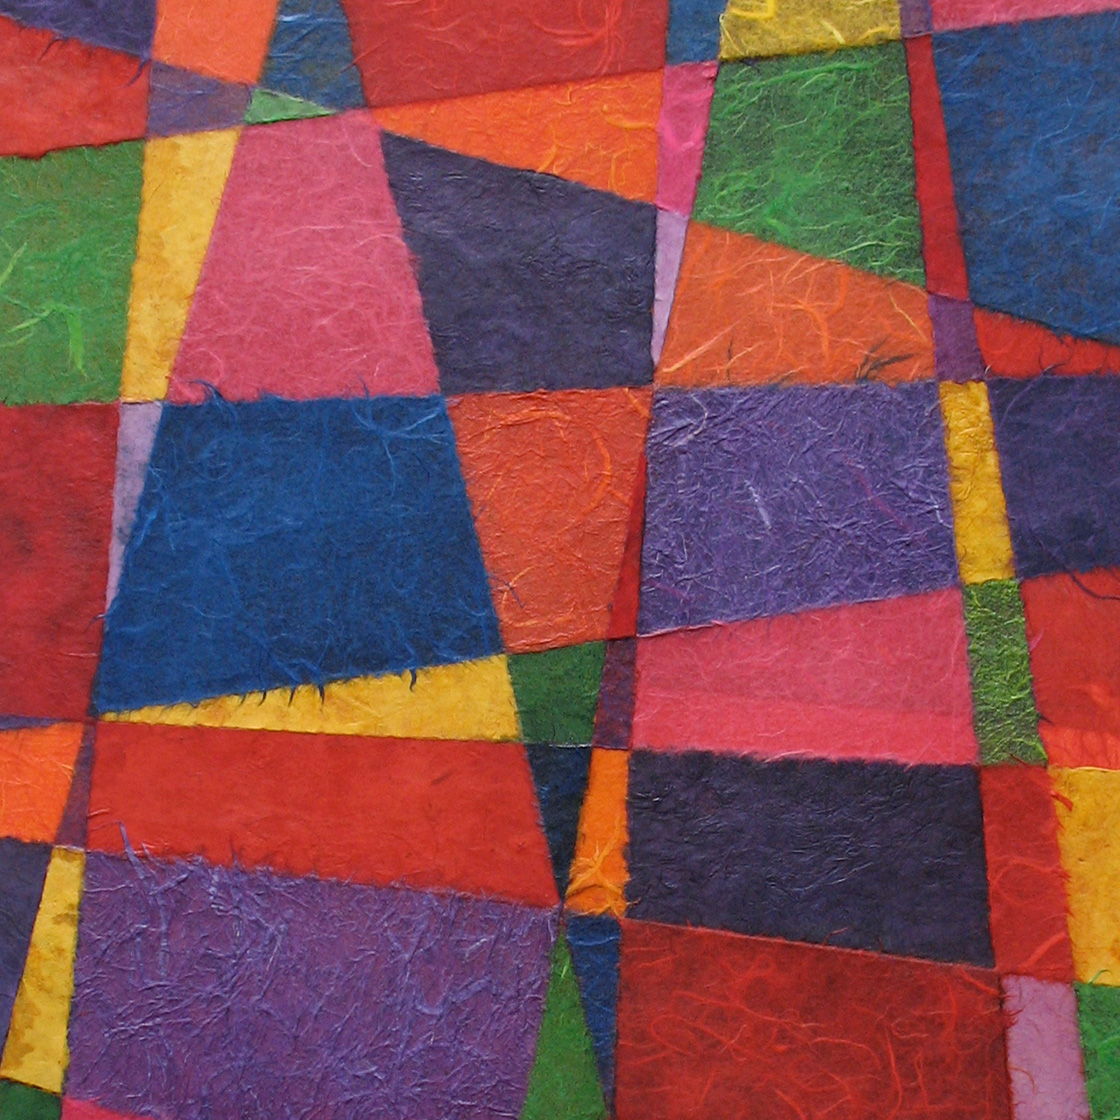 Color Vision IV (Detail)